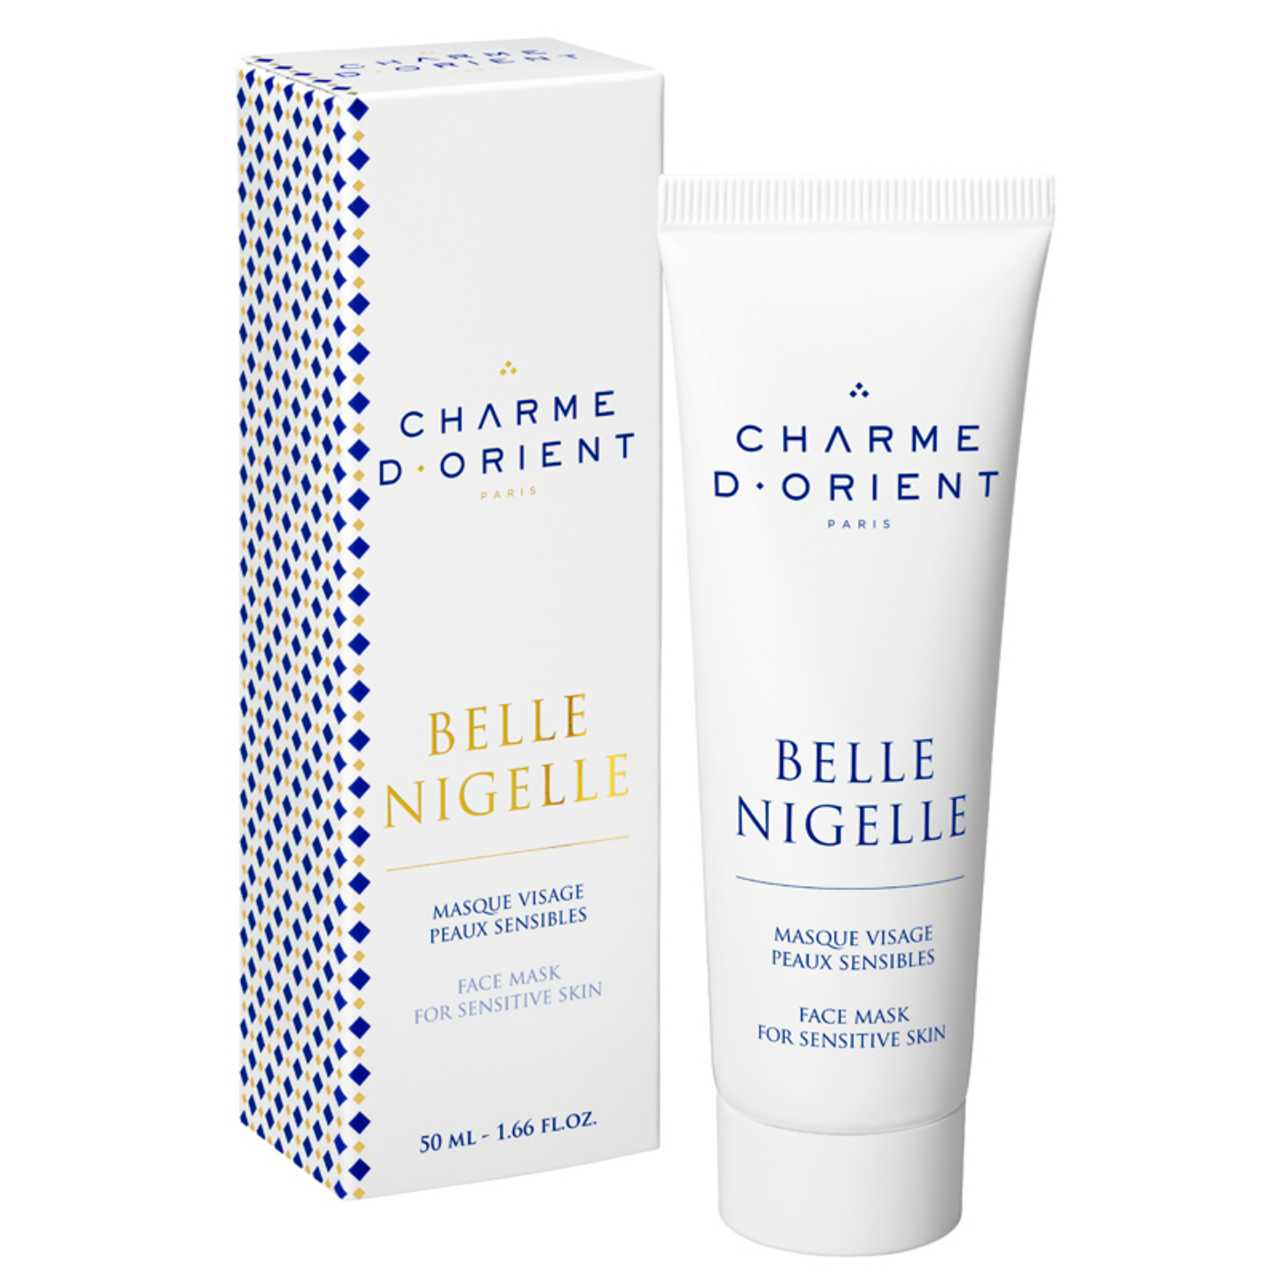 CHARME D'ORIENT BELLE NIGELLE Face Mask for Sensitive Skin